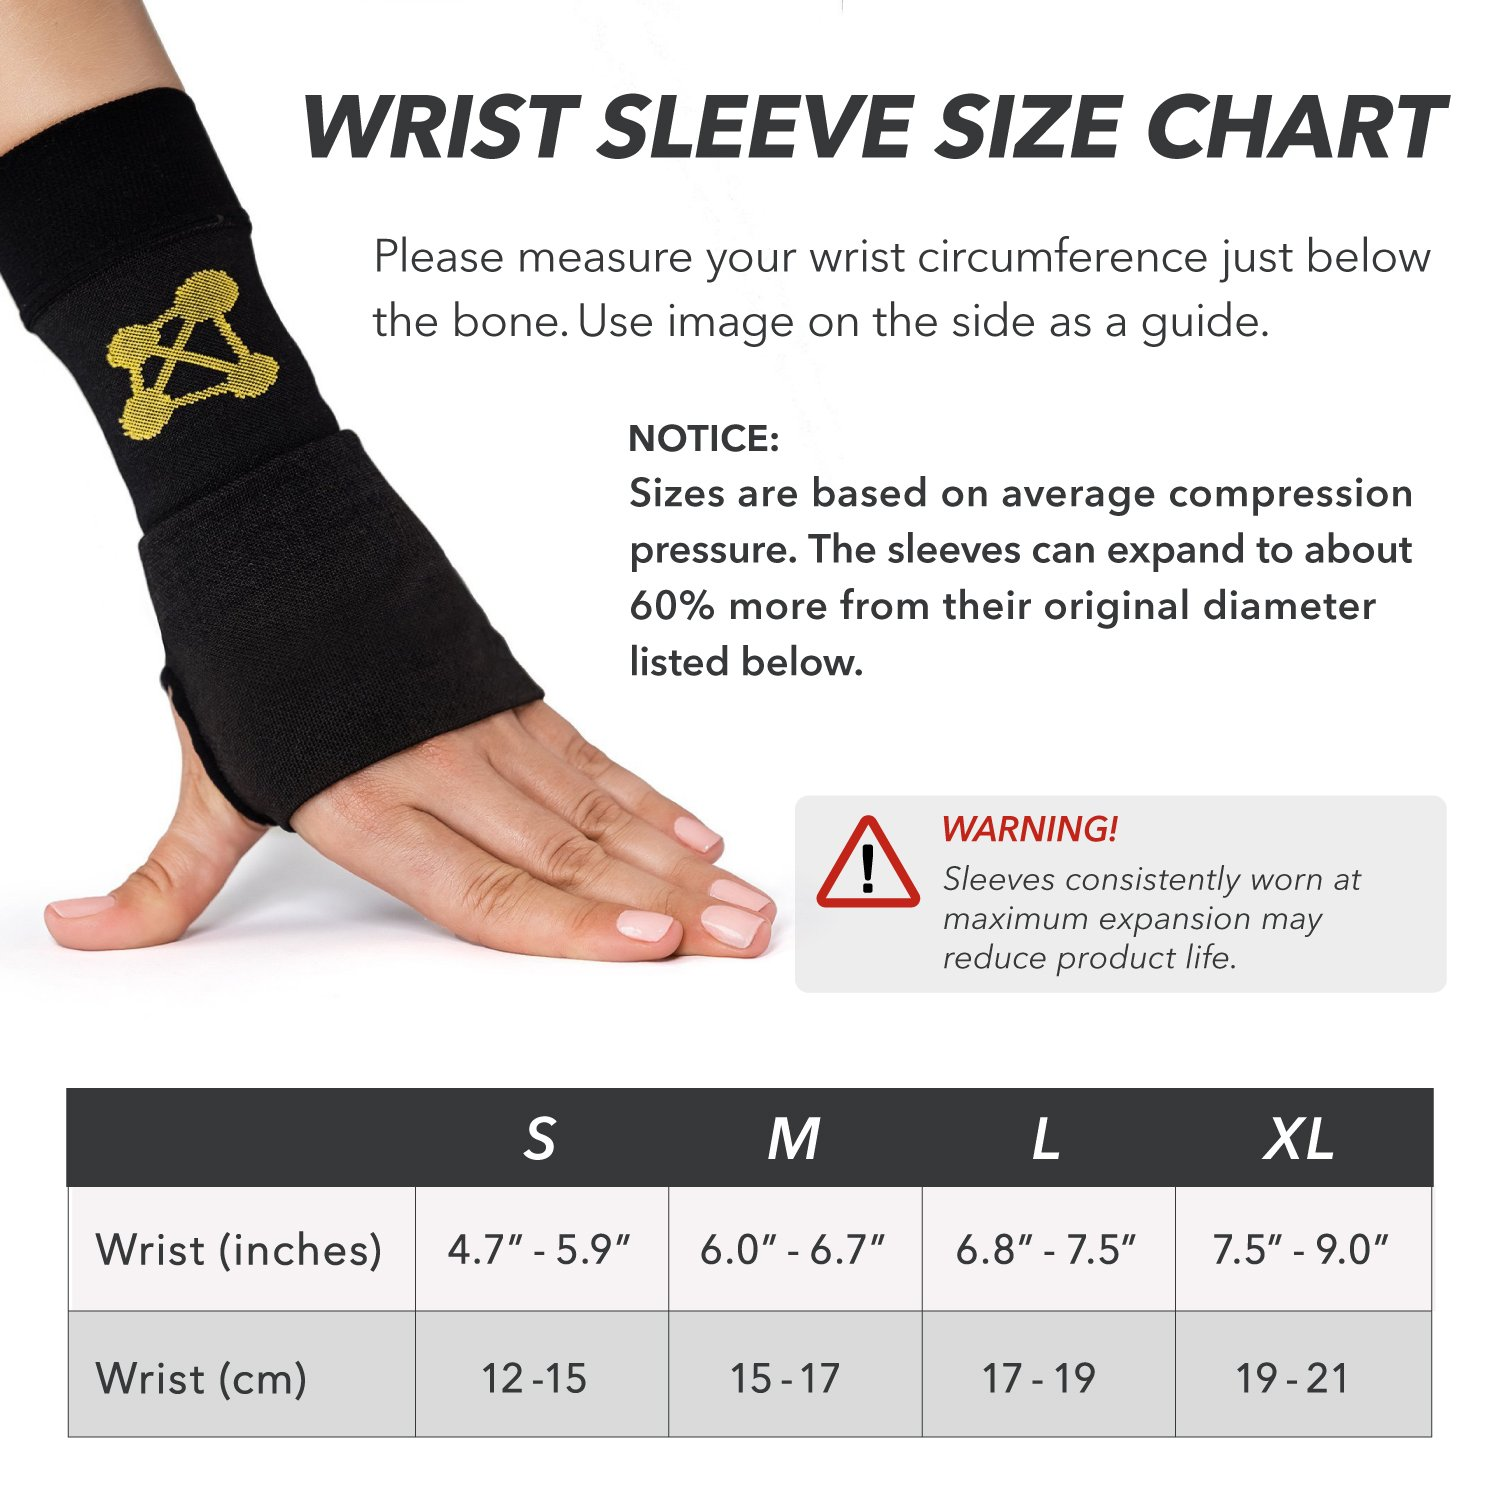 CopperJoint Copper-Infused Compression Wrist Sleeve, High-Performance Design Promotes Improved Circulation to Help Reduce Inflammation and Pain, Single Sleeve (Right, Small) by CopperJoint (Image #4)